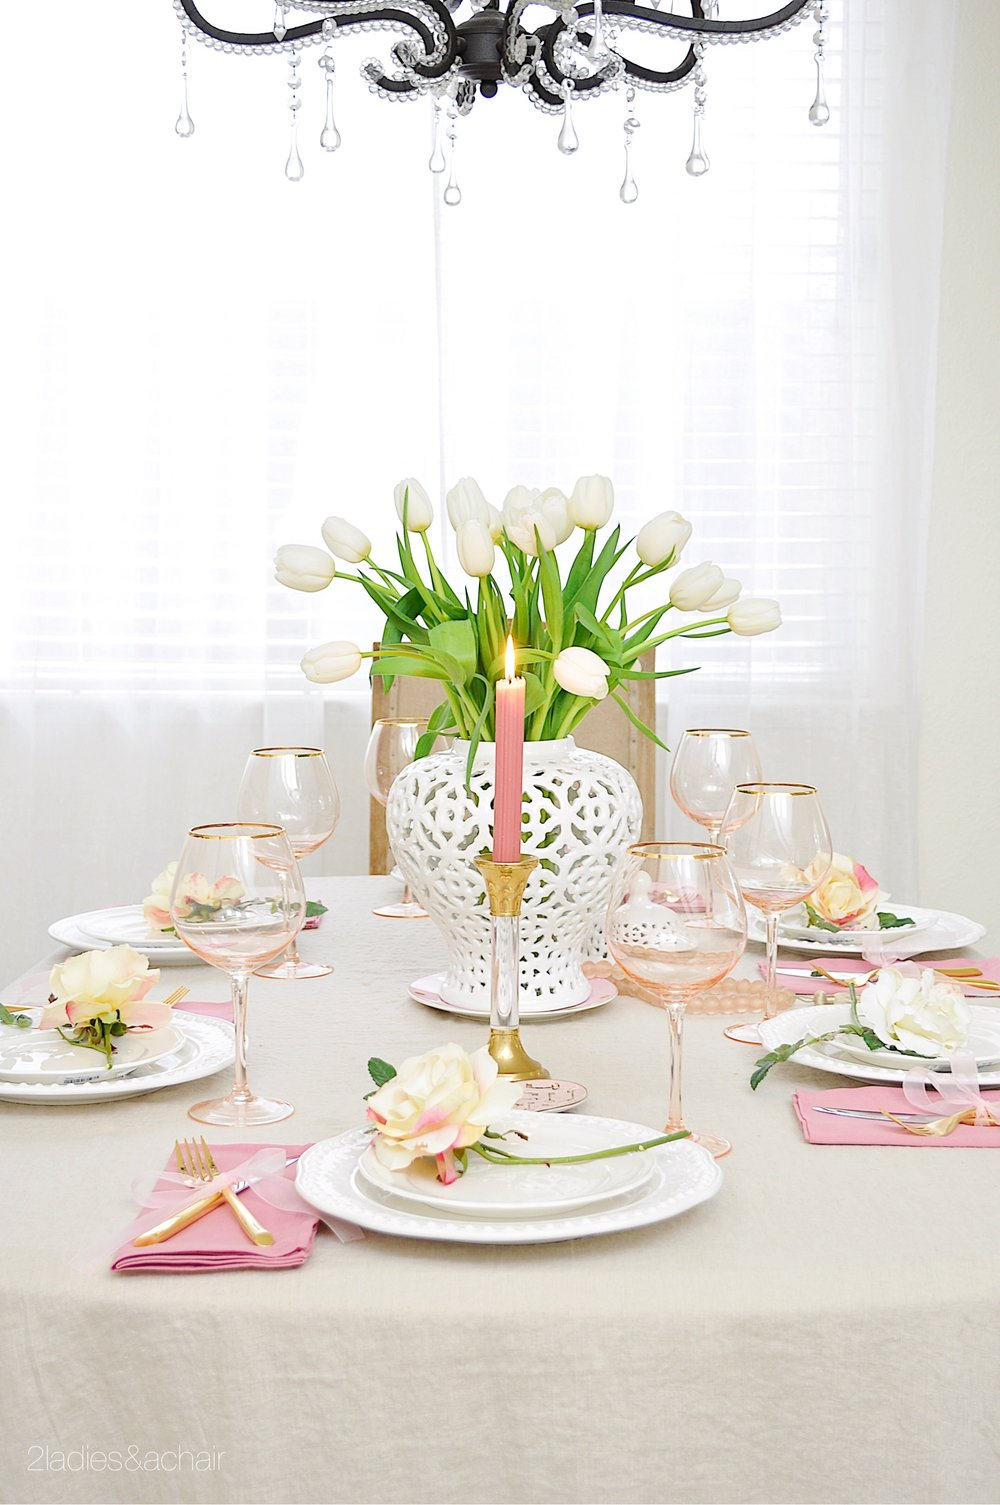 valentine's day table decor IMG_8964.JPG